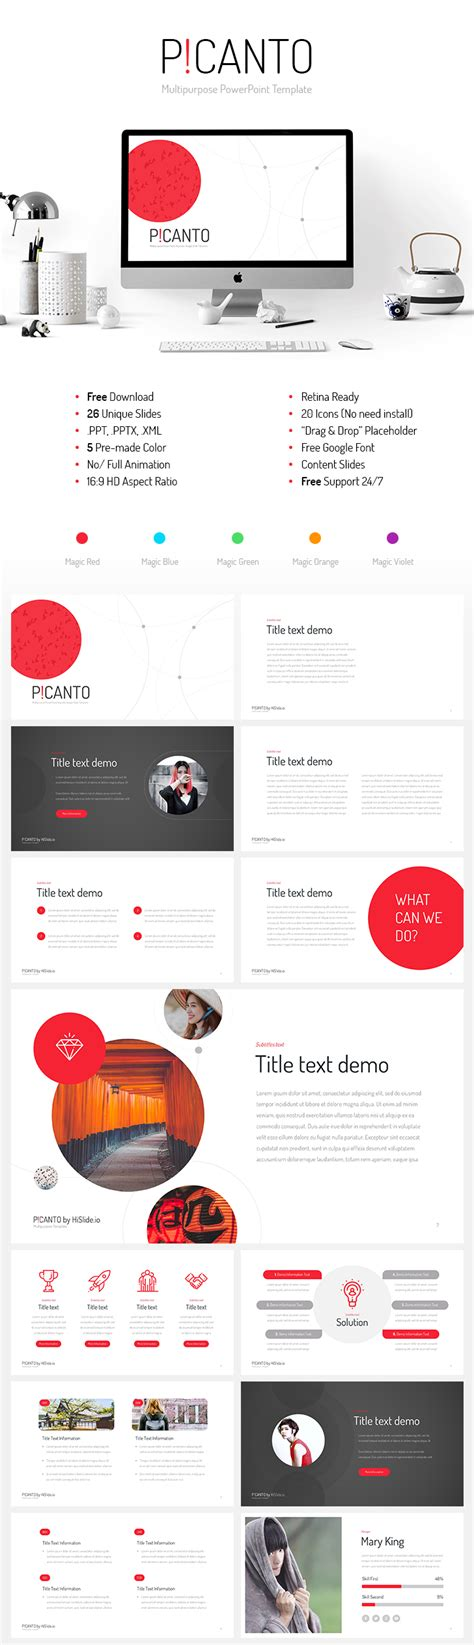 Xml Templates For Free by Powerpoint Templates Xml Image Collections Powerpoint